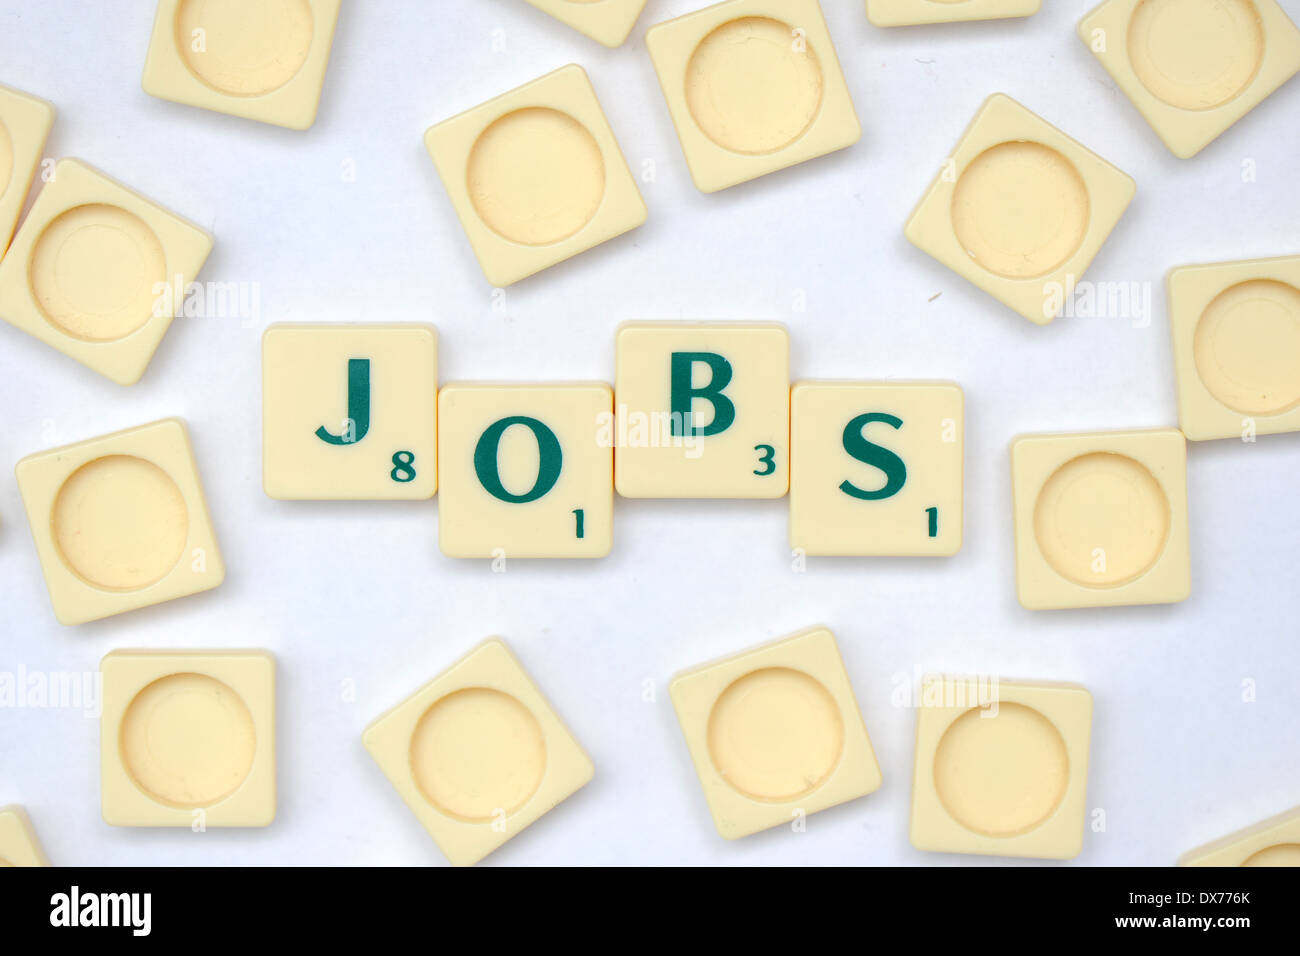 Scrabble tiles that spell out jobs. - Stock Image